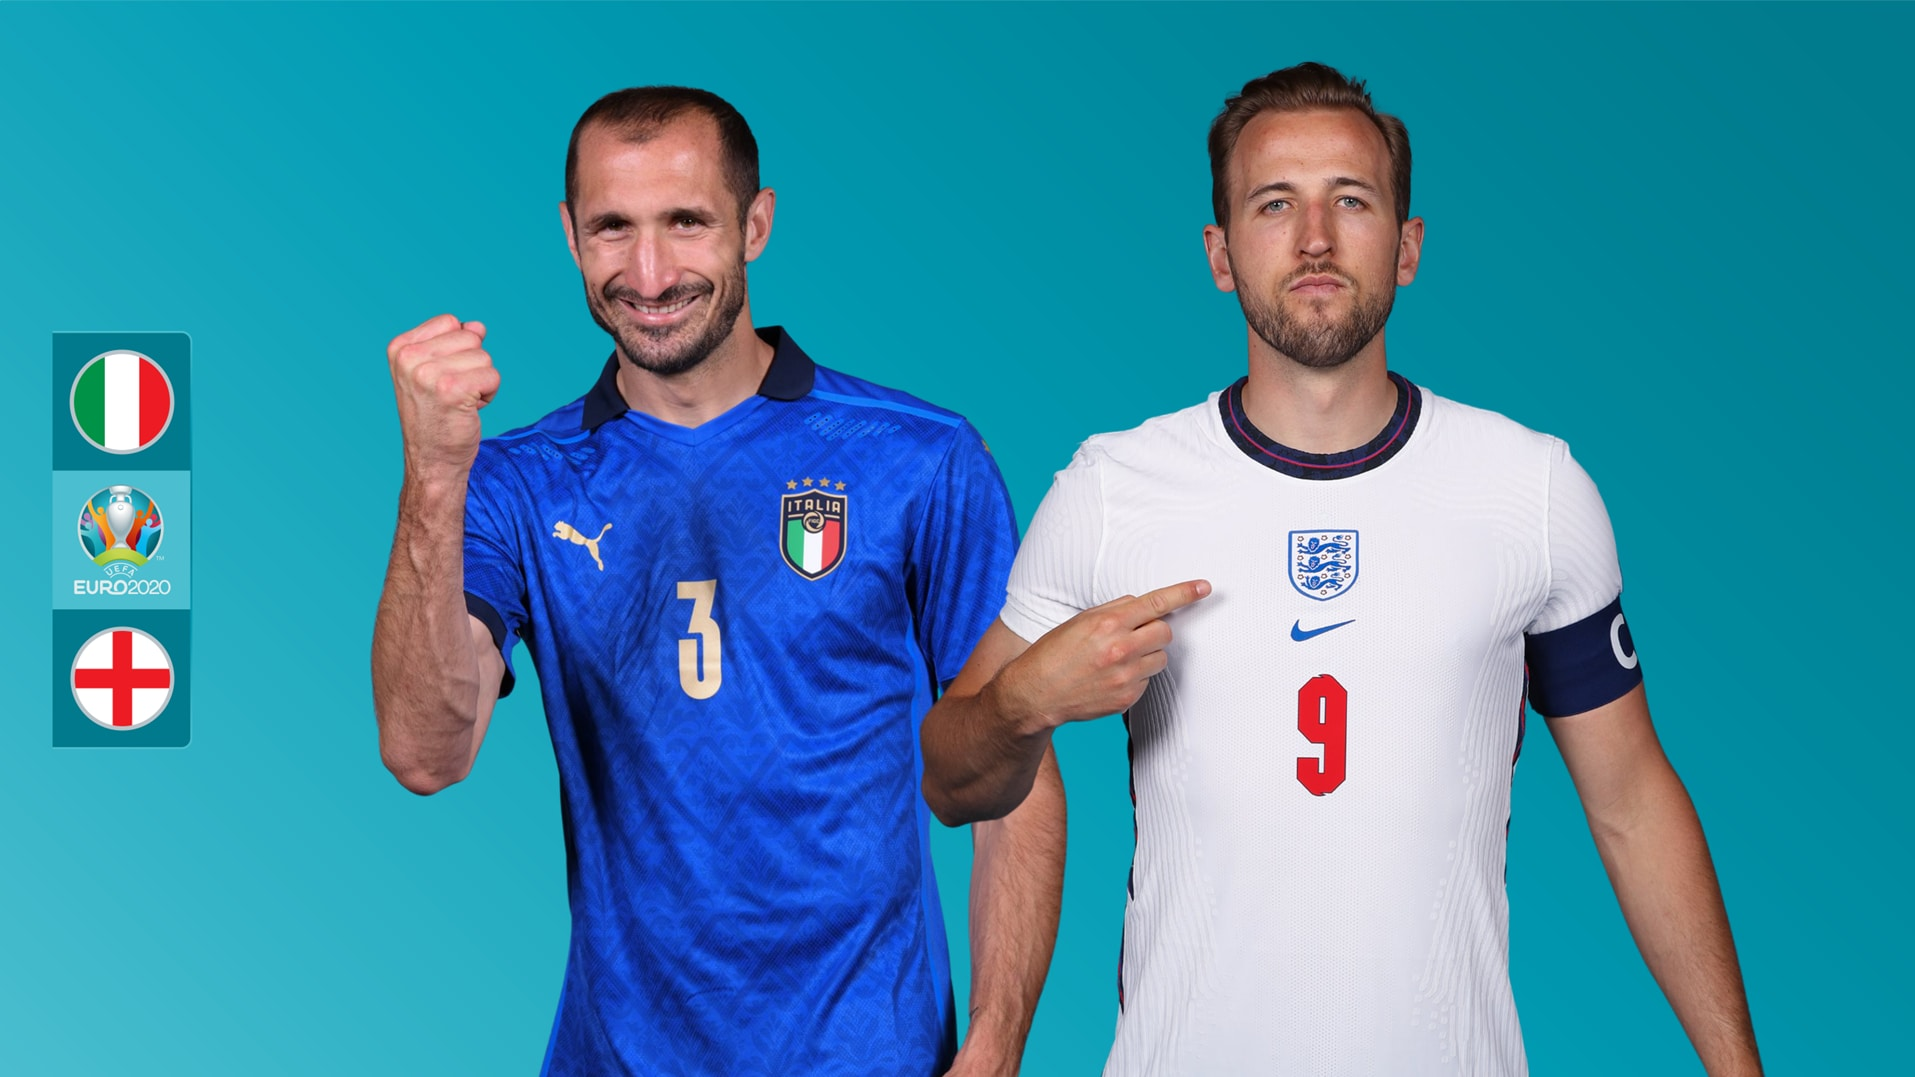 Will the Euro 2020 Final on Sunday be England's 7th successive loss against Italy?